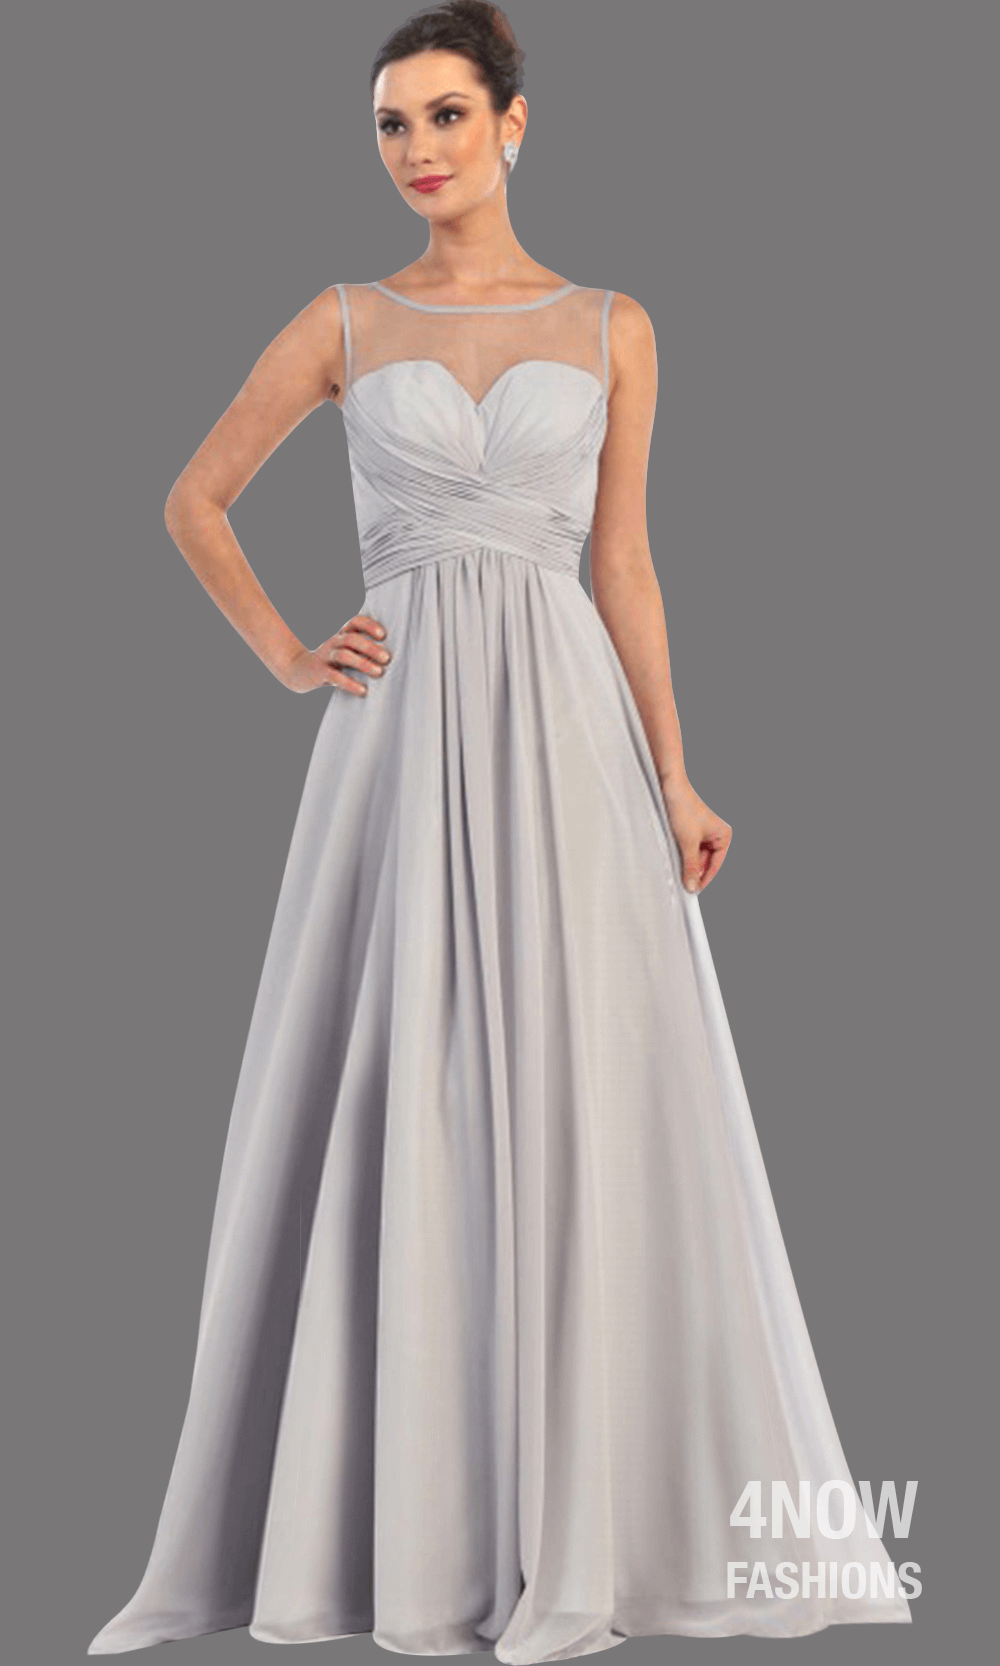 Silver Long Illusion Neckline Dress